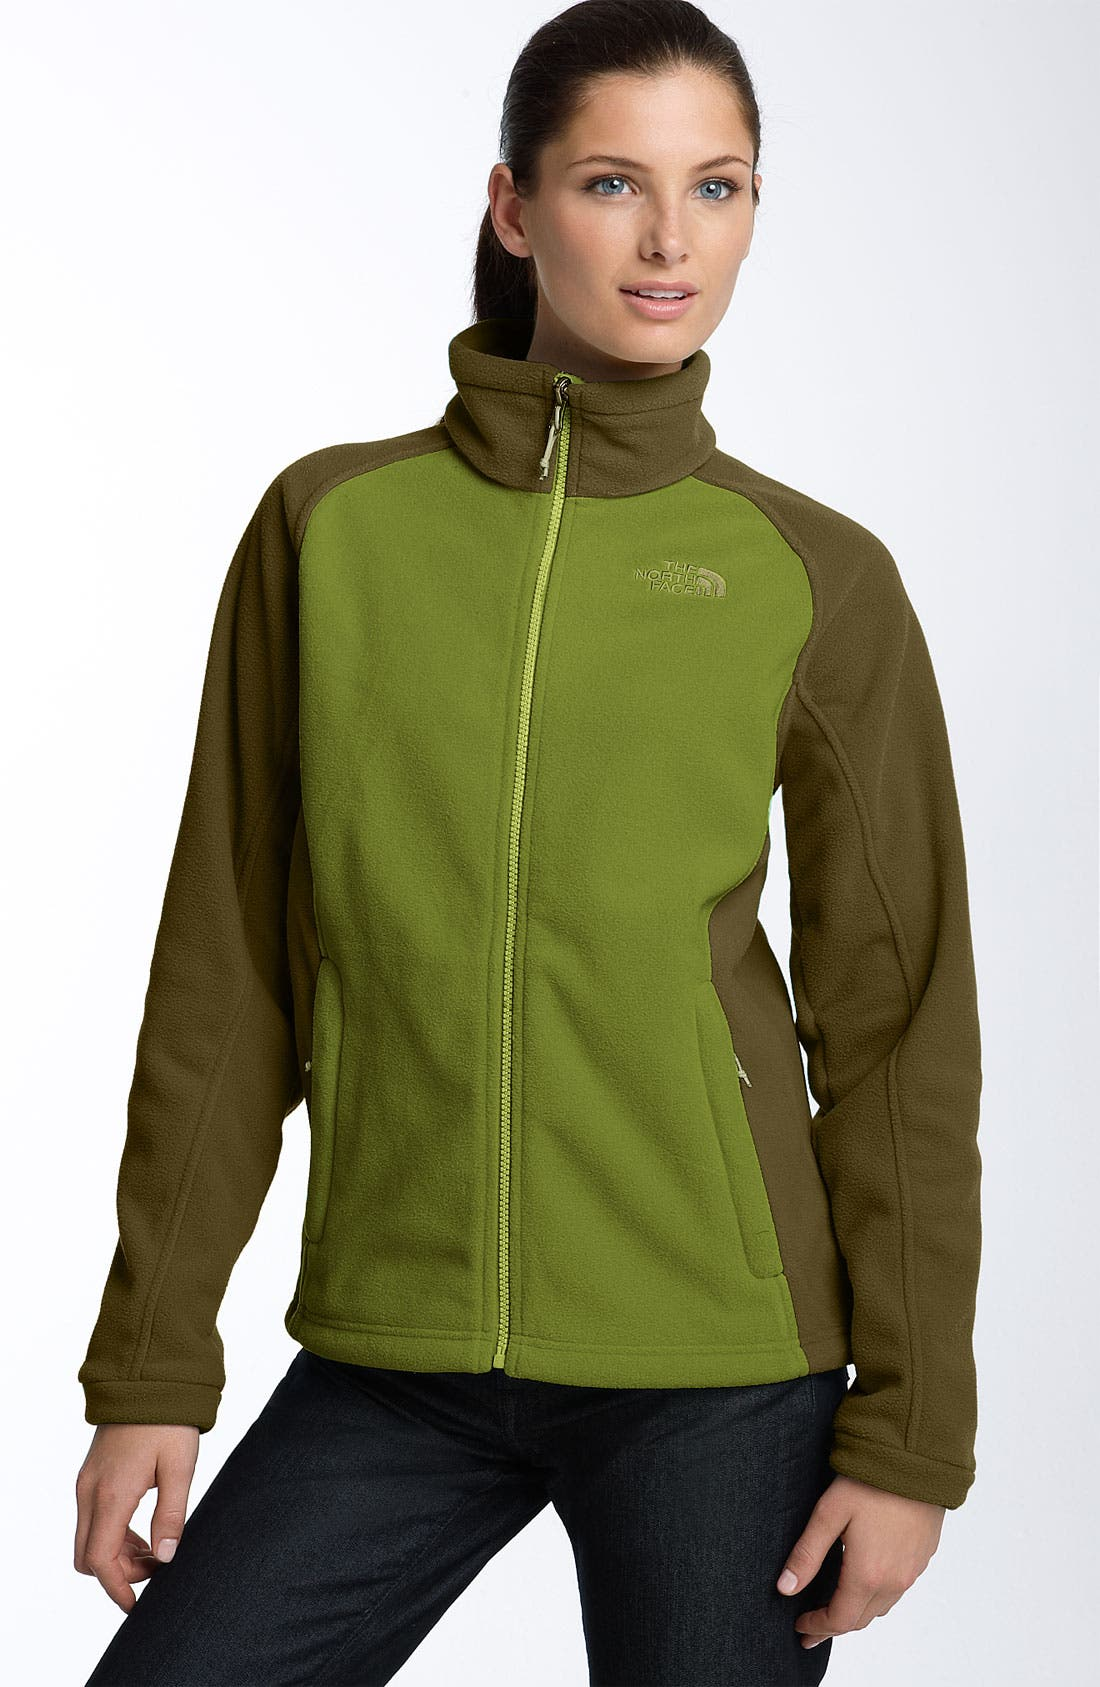 Alternate Image 1 Selected - The North Face 'Khumbu' Jacket